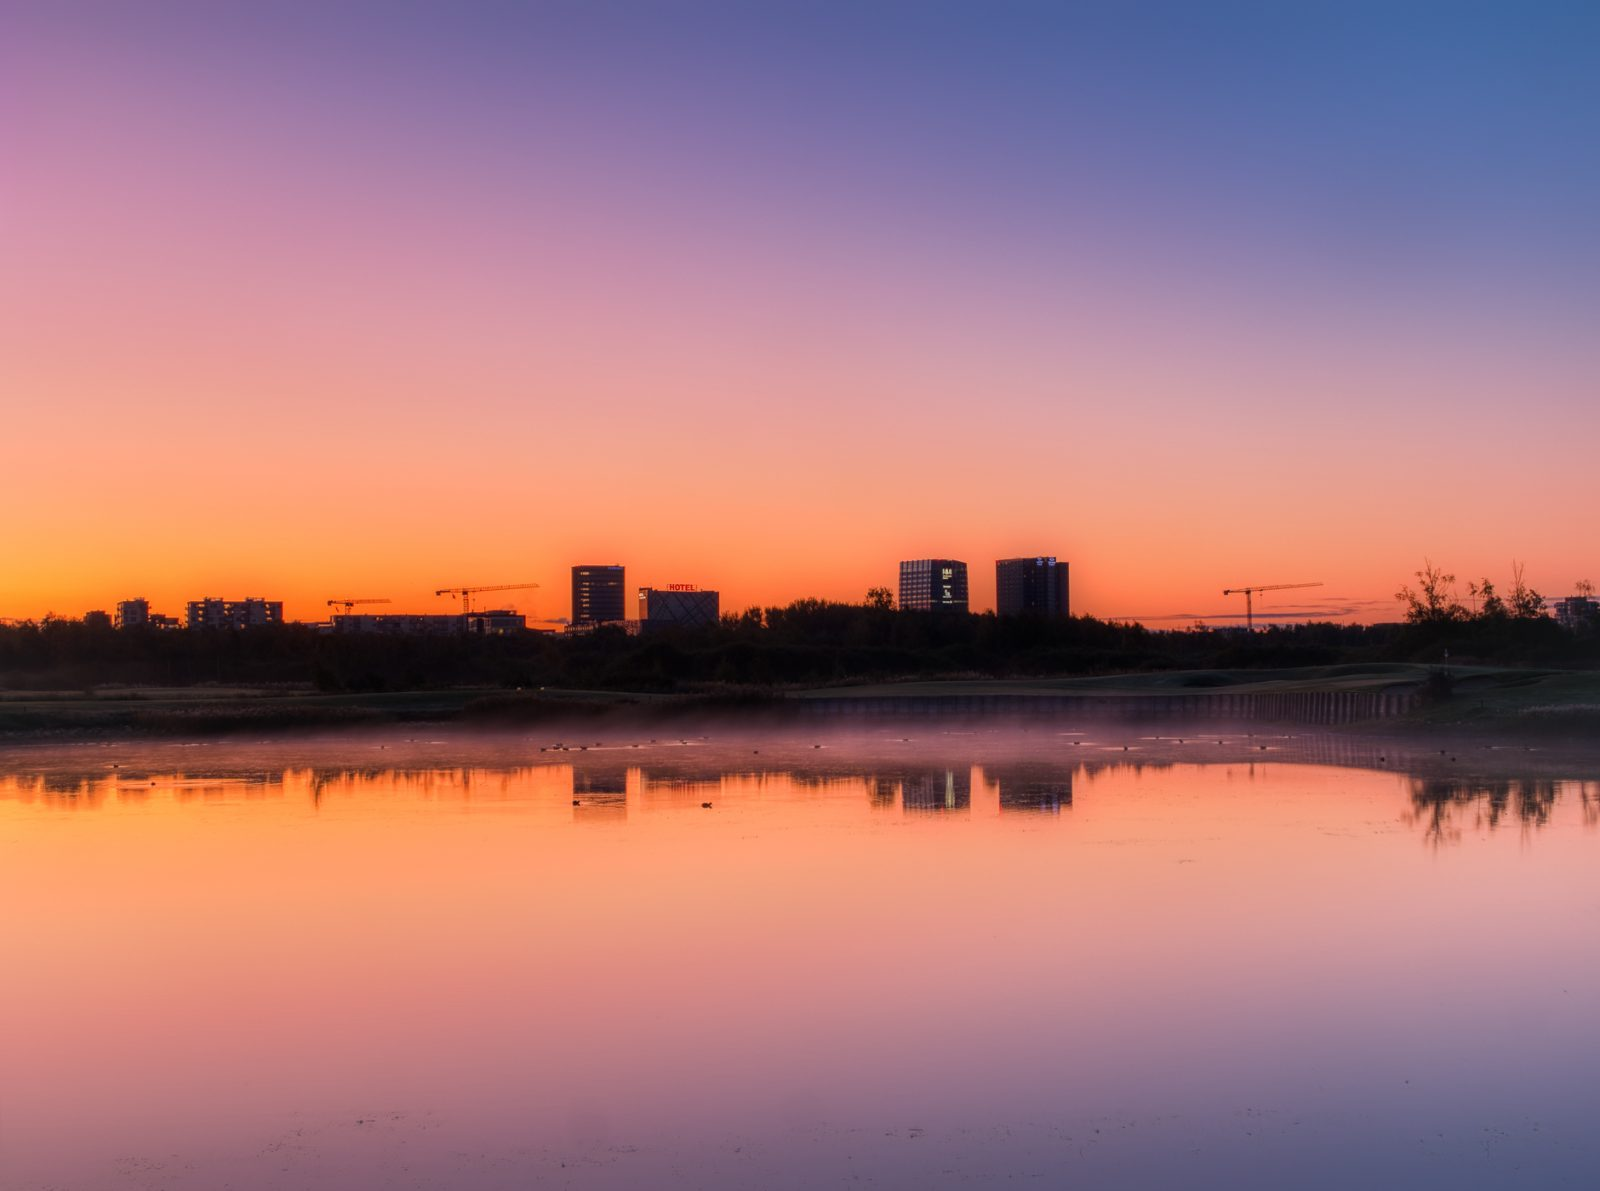 Ørestad at sunrise, fall 2019, by Ørestad based photographer Stefan Grage